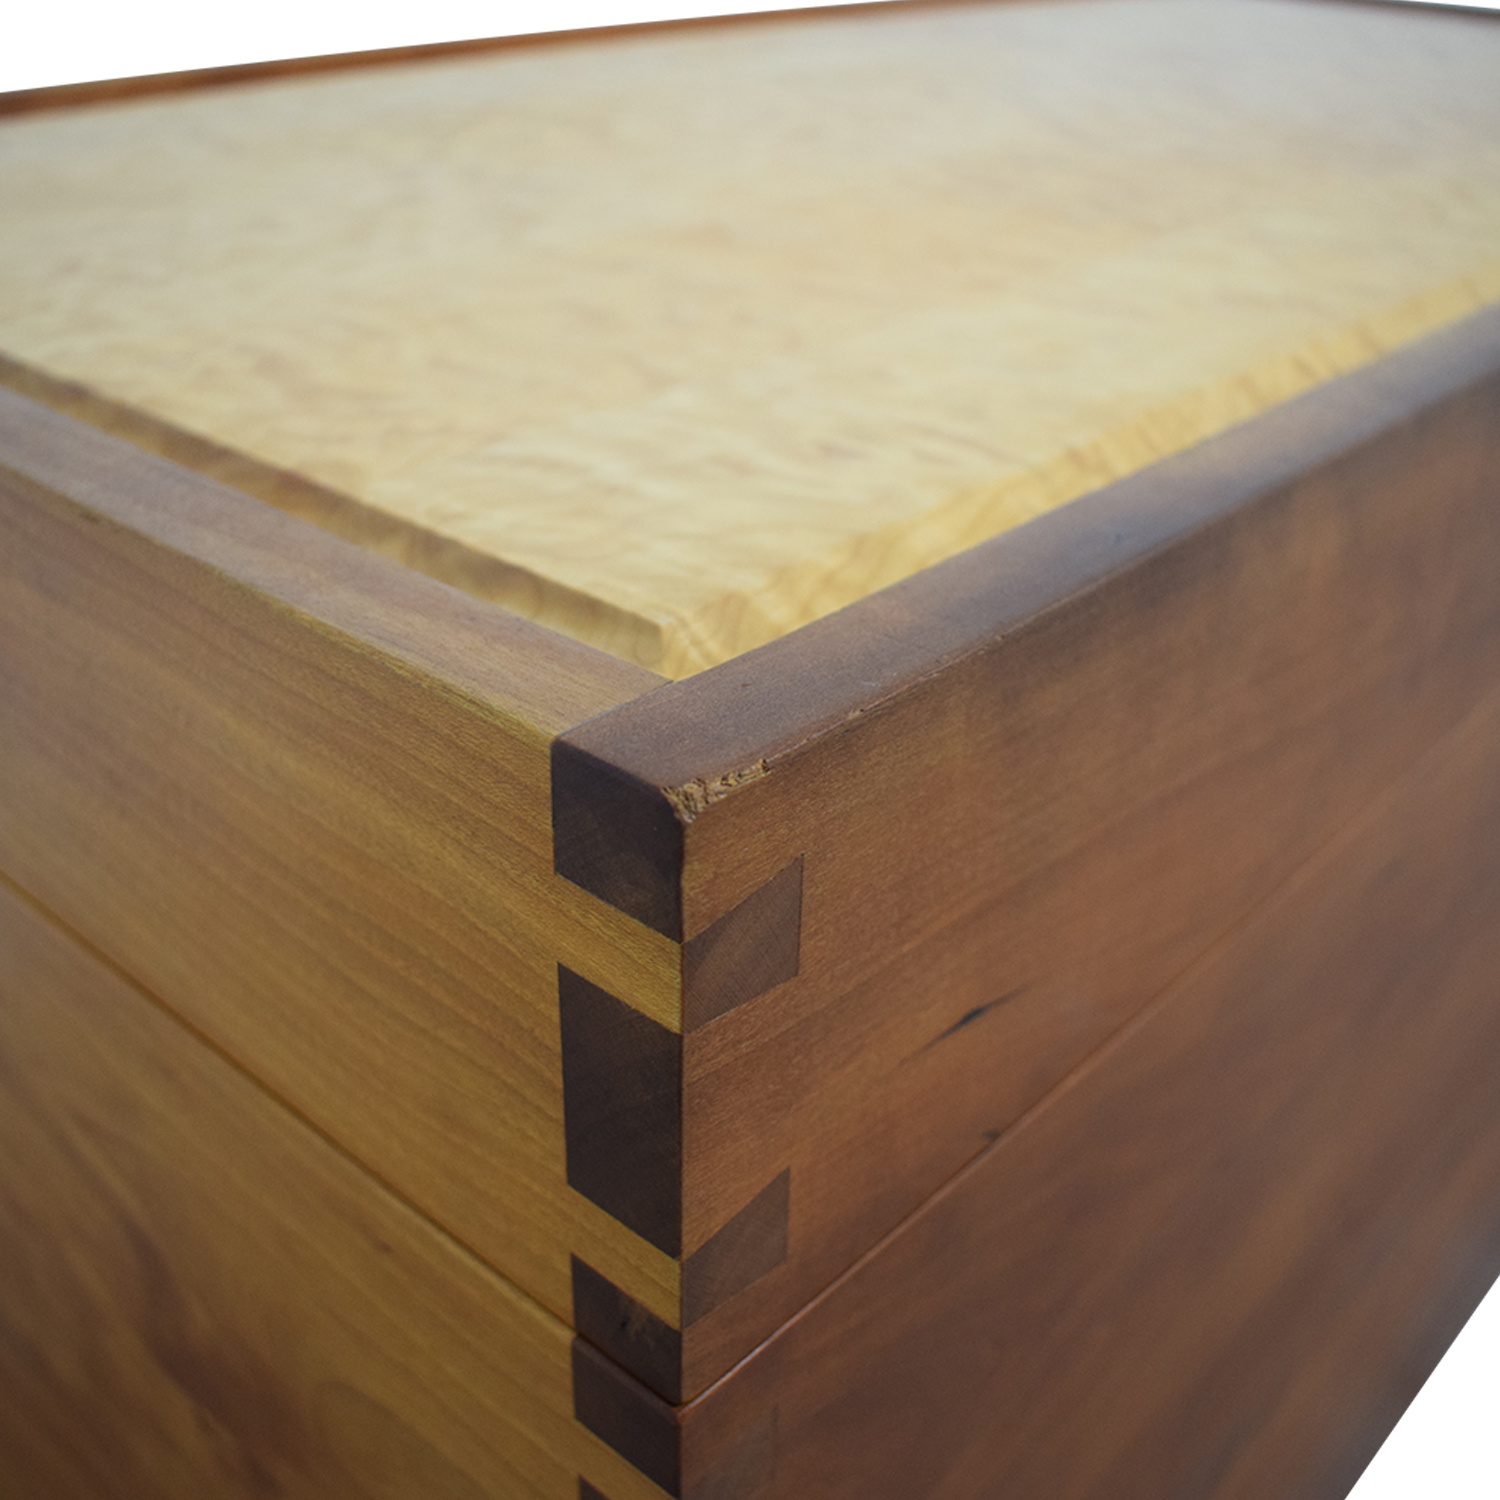 buy The Joinery Custom Wood Hope Chest Trunk The Joinery Storage